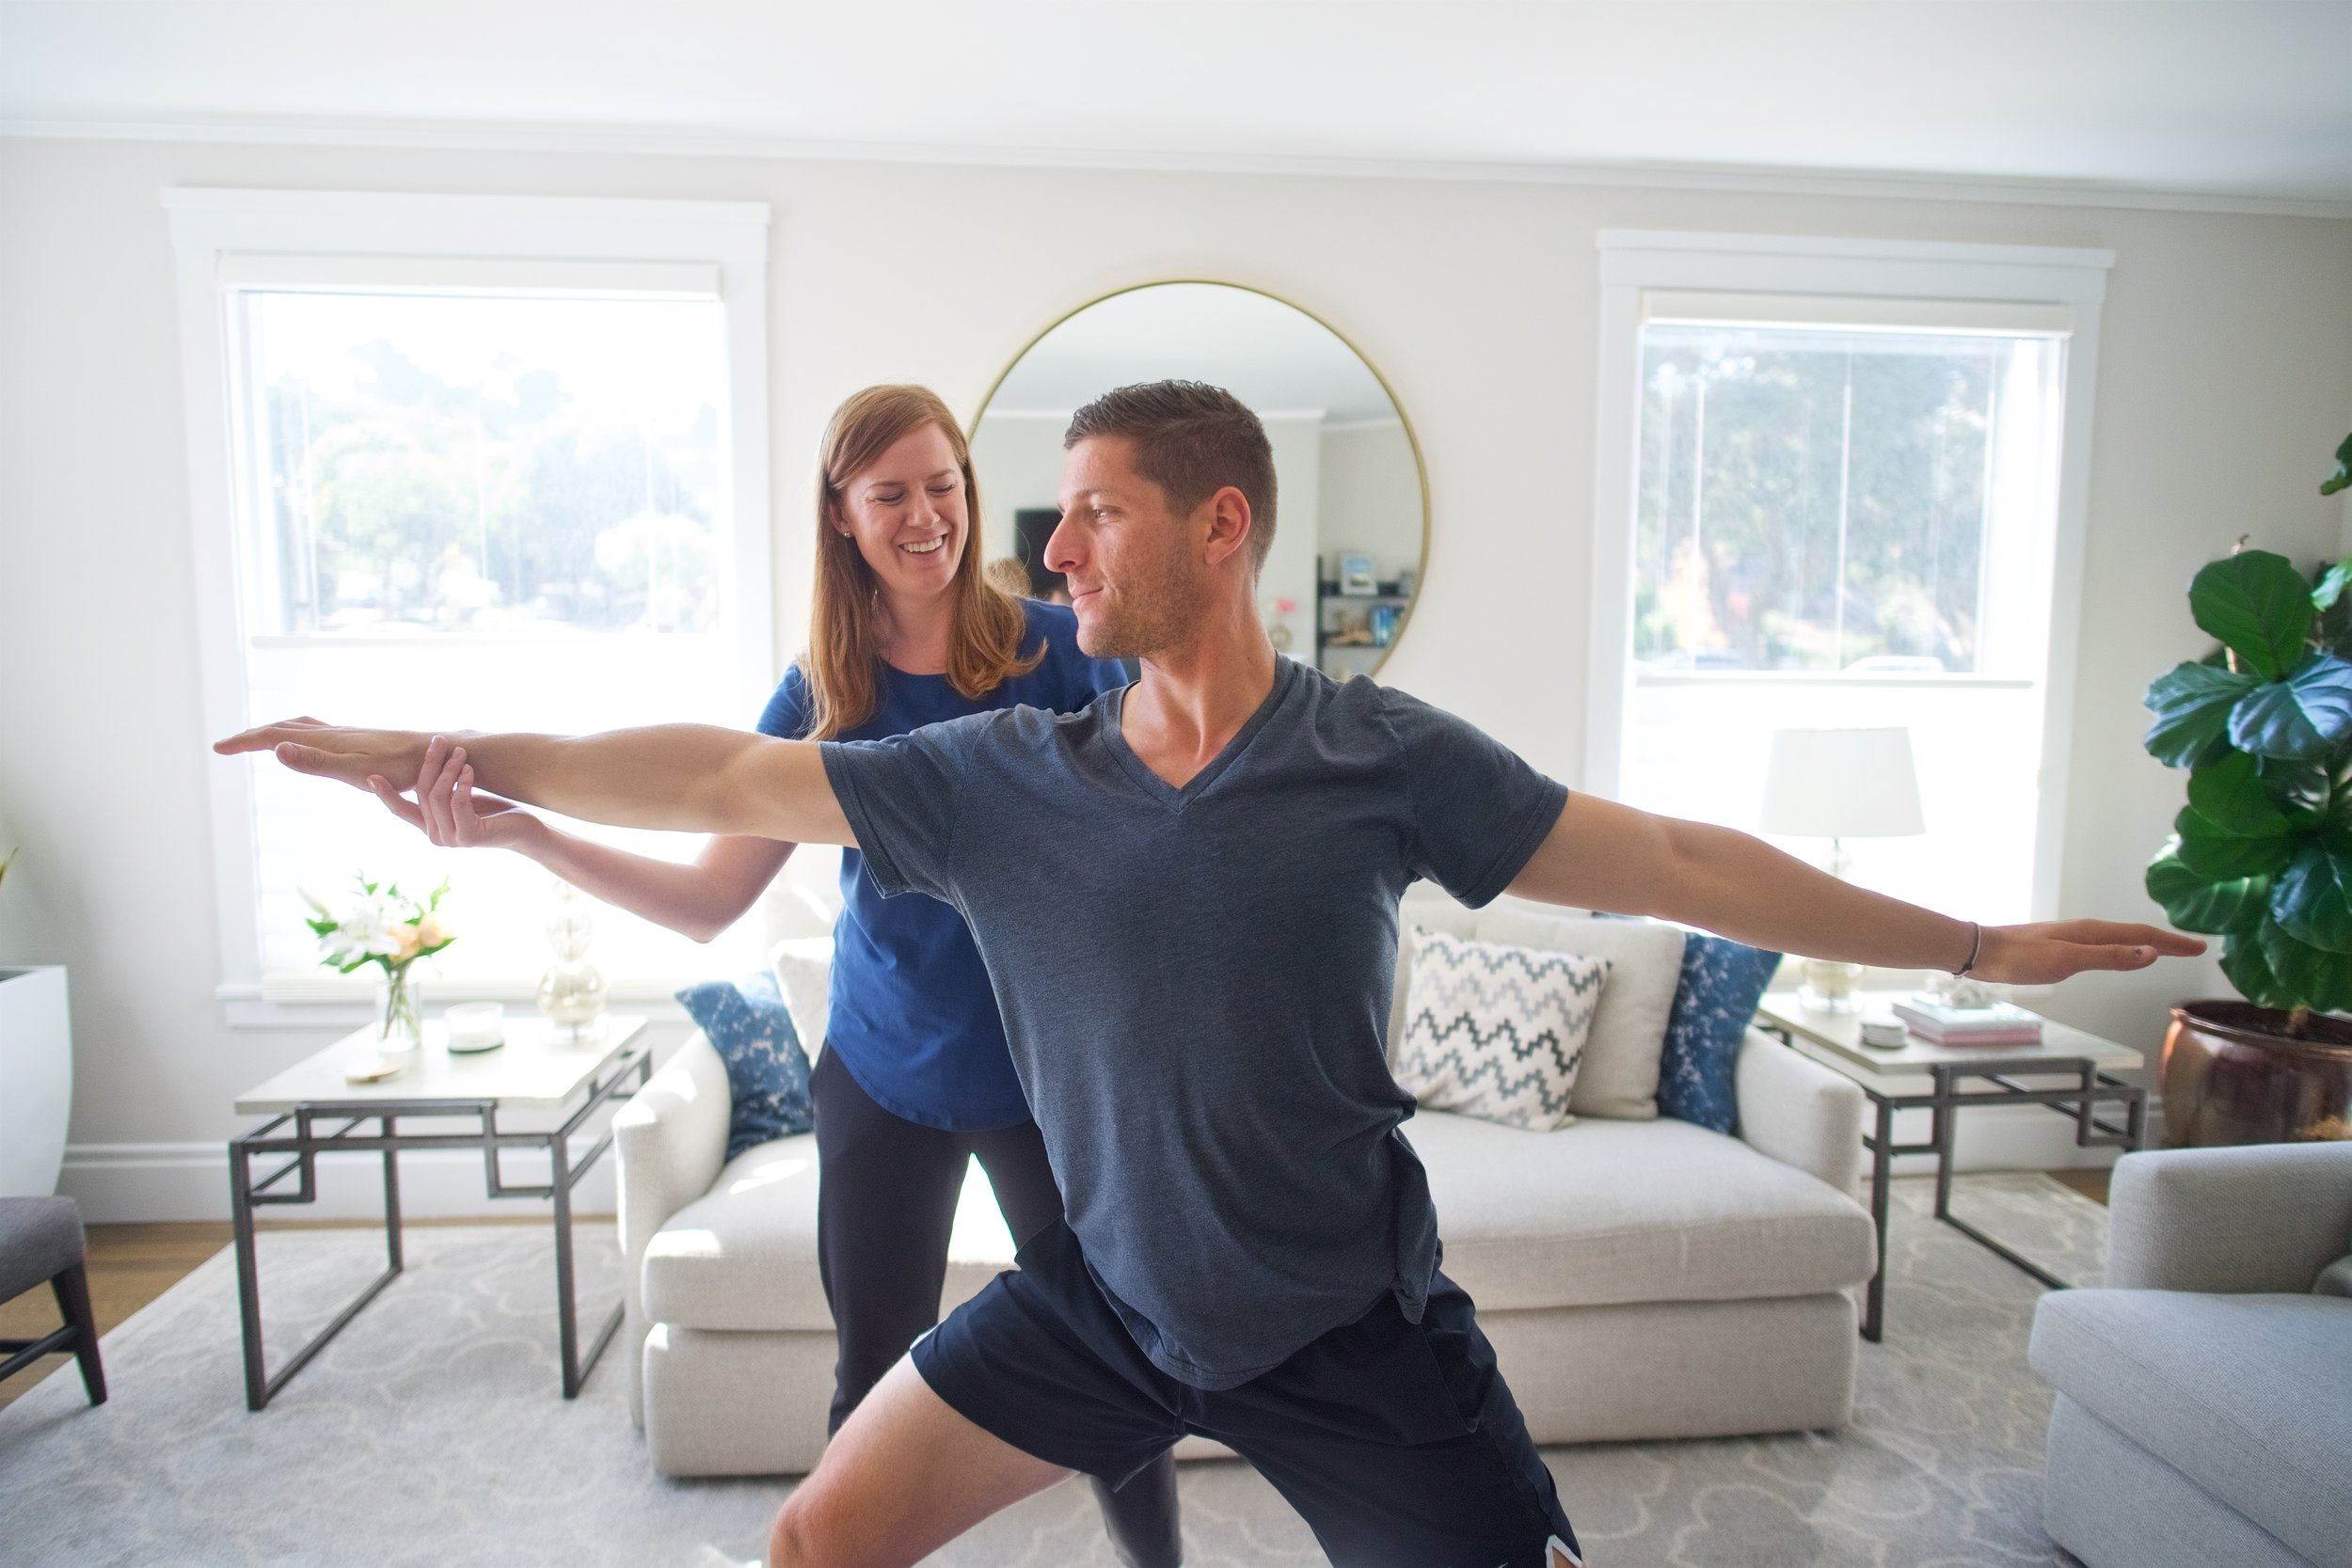 1-on-1 Wellbeing meetings   Proactively use hands on therapy and exercise to prevent pain & injury, optimize holistic health and meet your fitness goals.